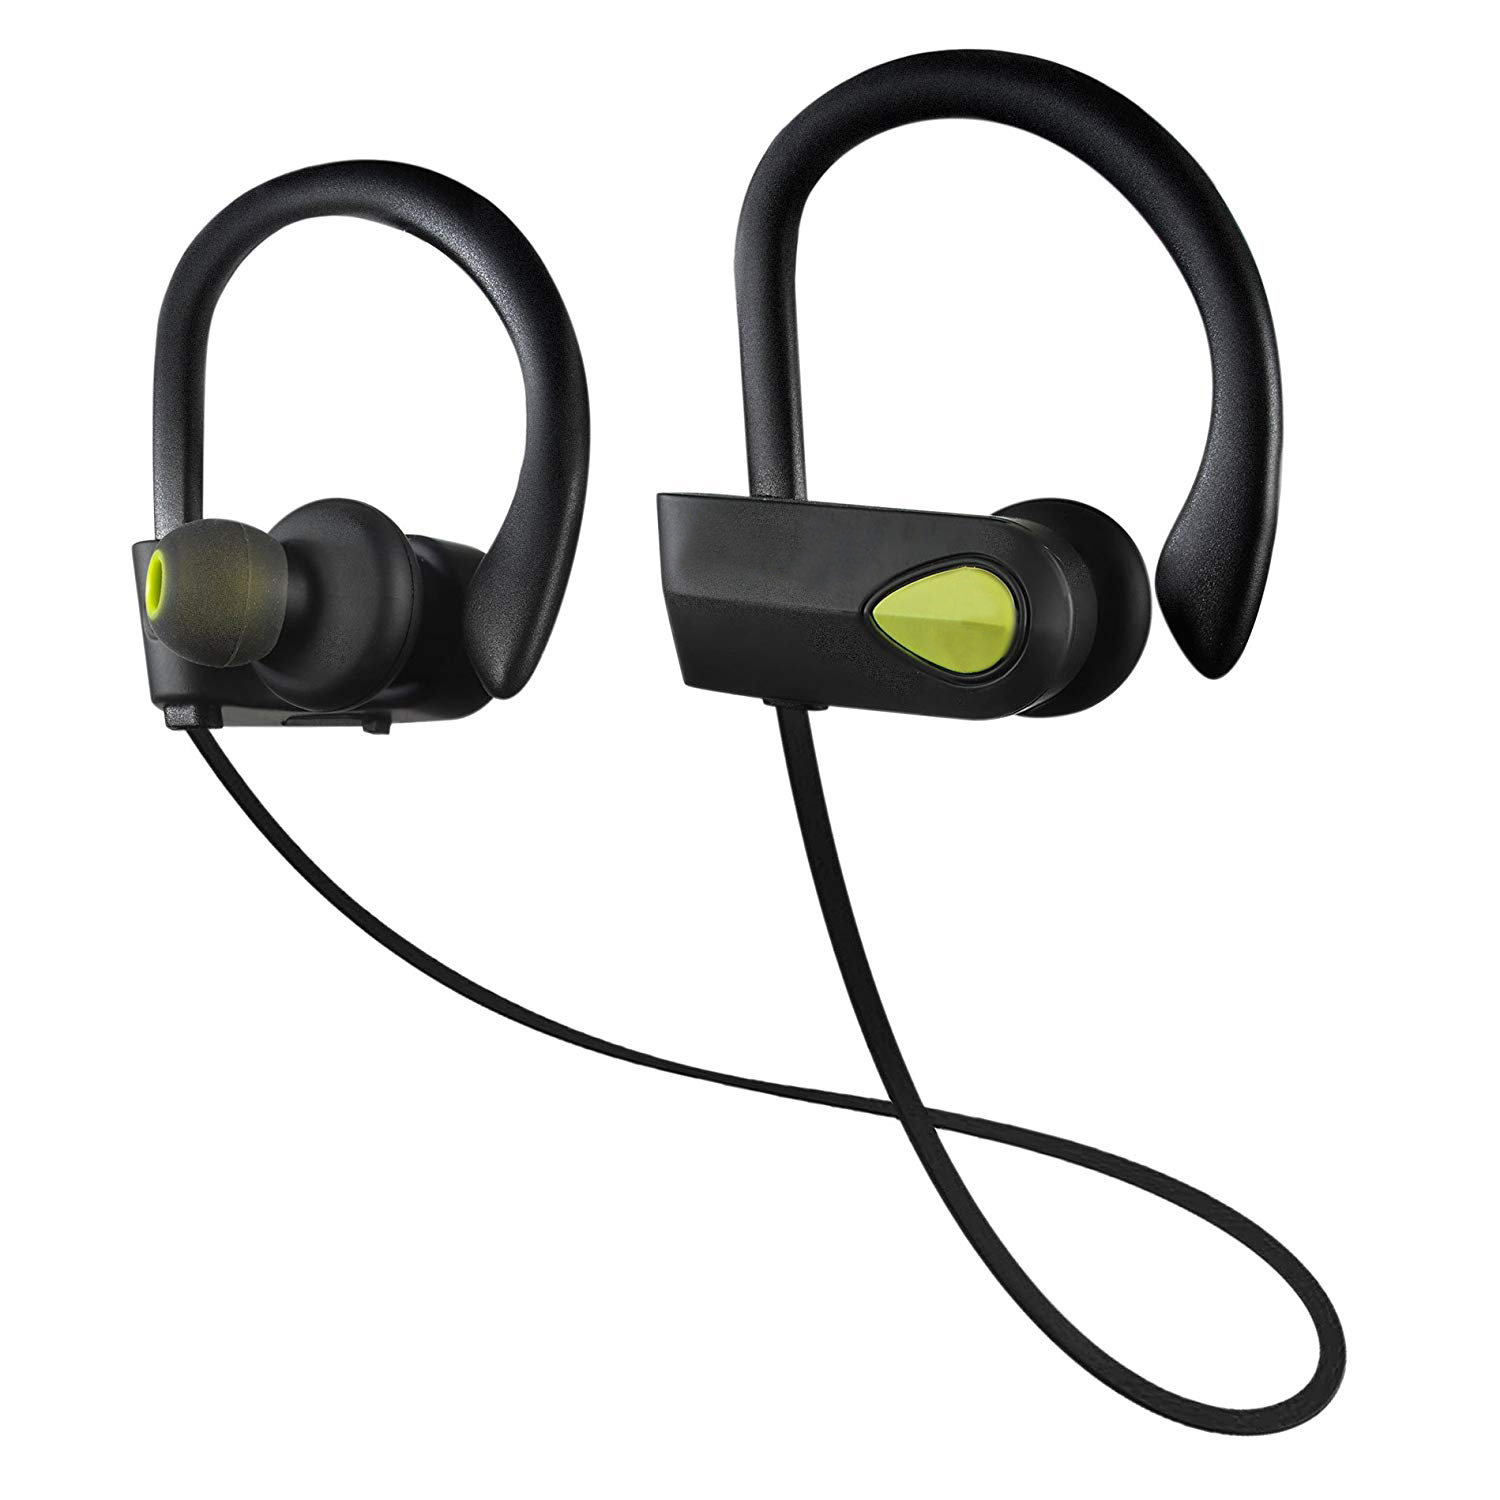 YueMai Acoustic Technology top quality cheap bluetooth headset with great bass for kids-6